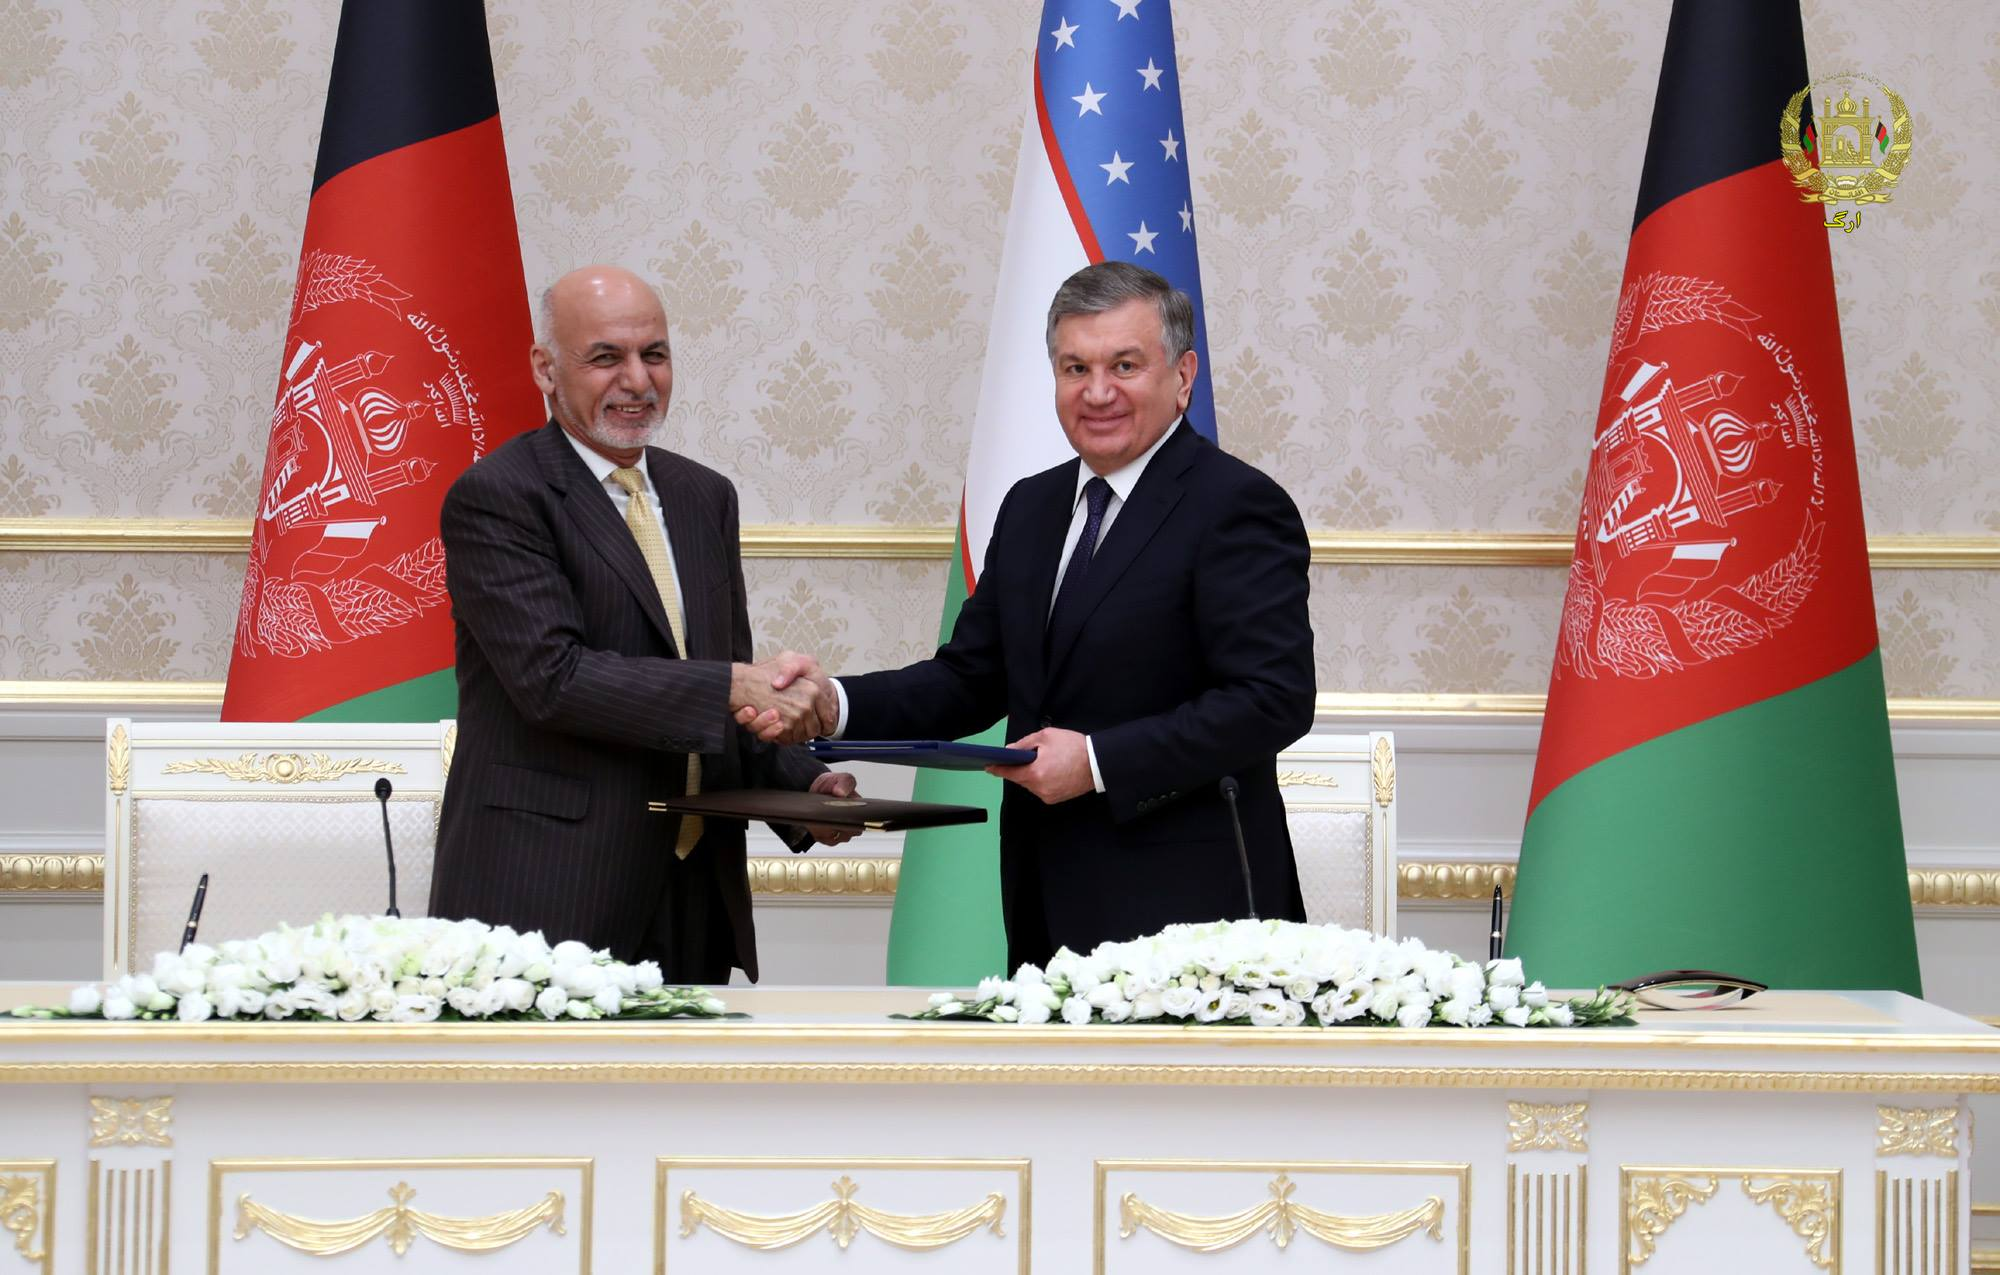 Uzbekistani President Shavkat Mirziyoyev and Afghan President Ashraf Ghani oversaw the signing of dozens of agreements and trade contracts worth more than $500 million December 5 in Tashkent. [Afghan Presidential Palace]